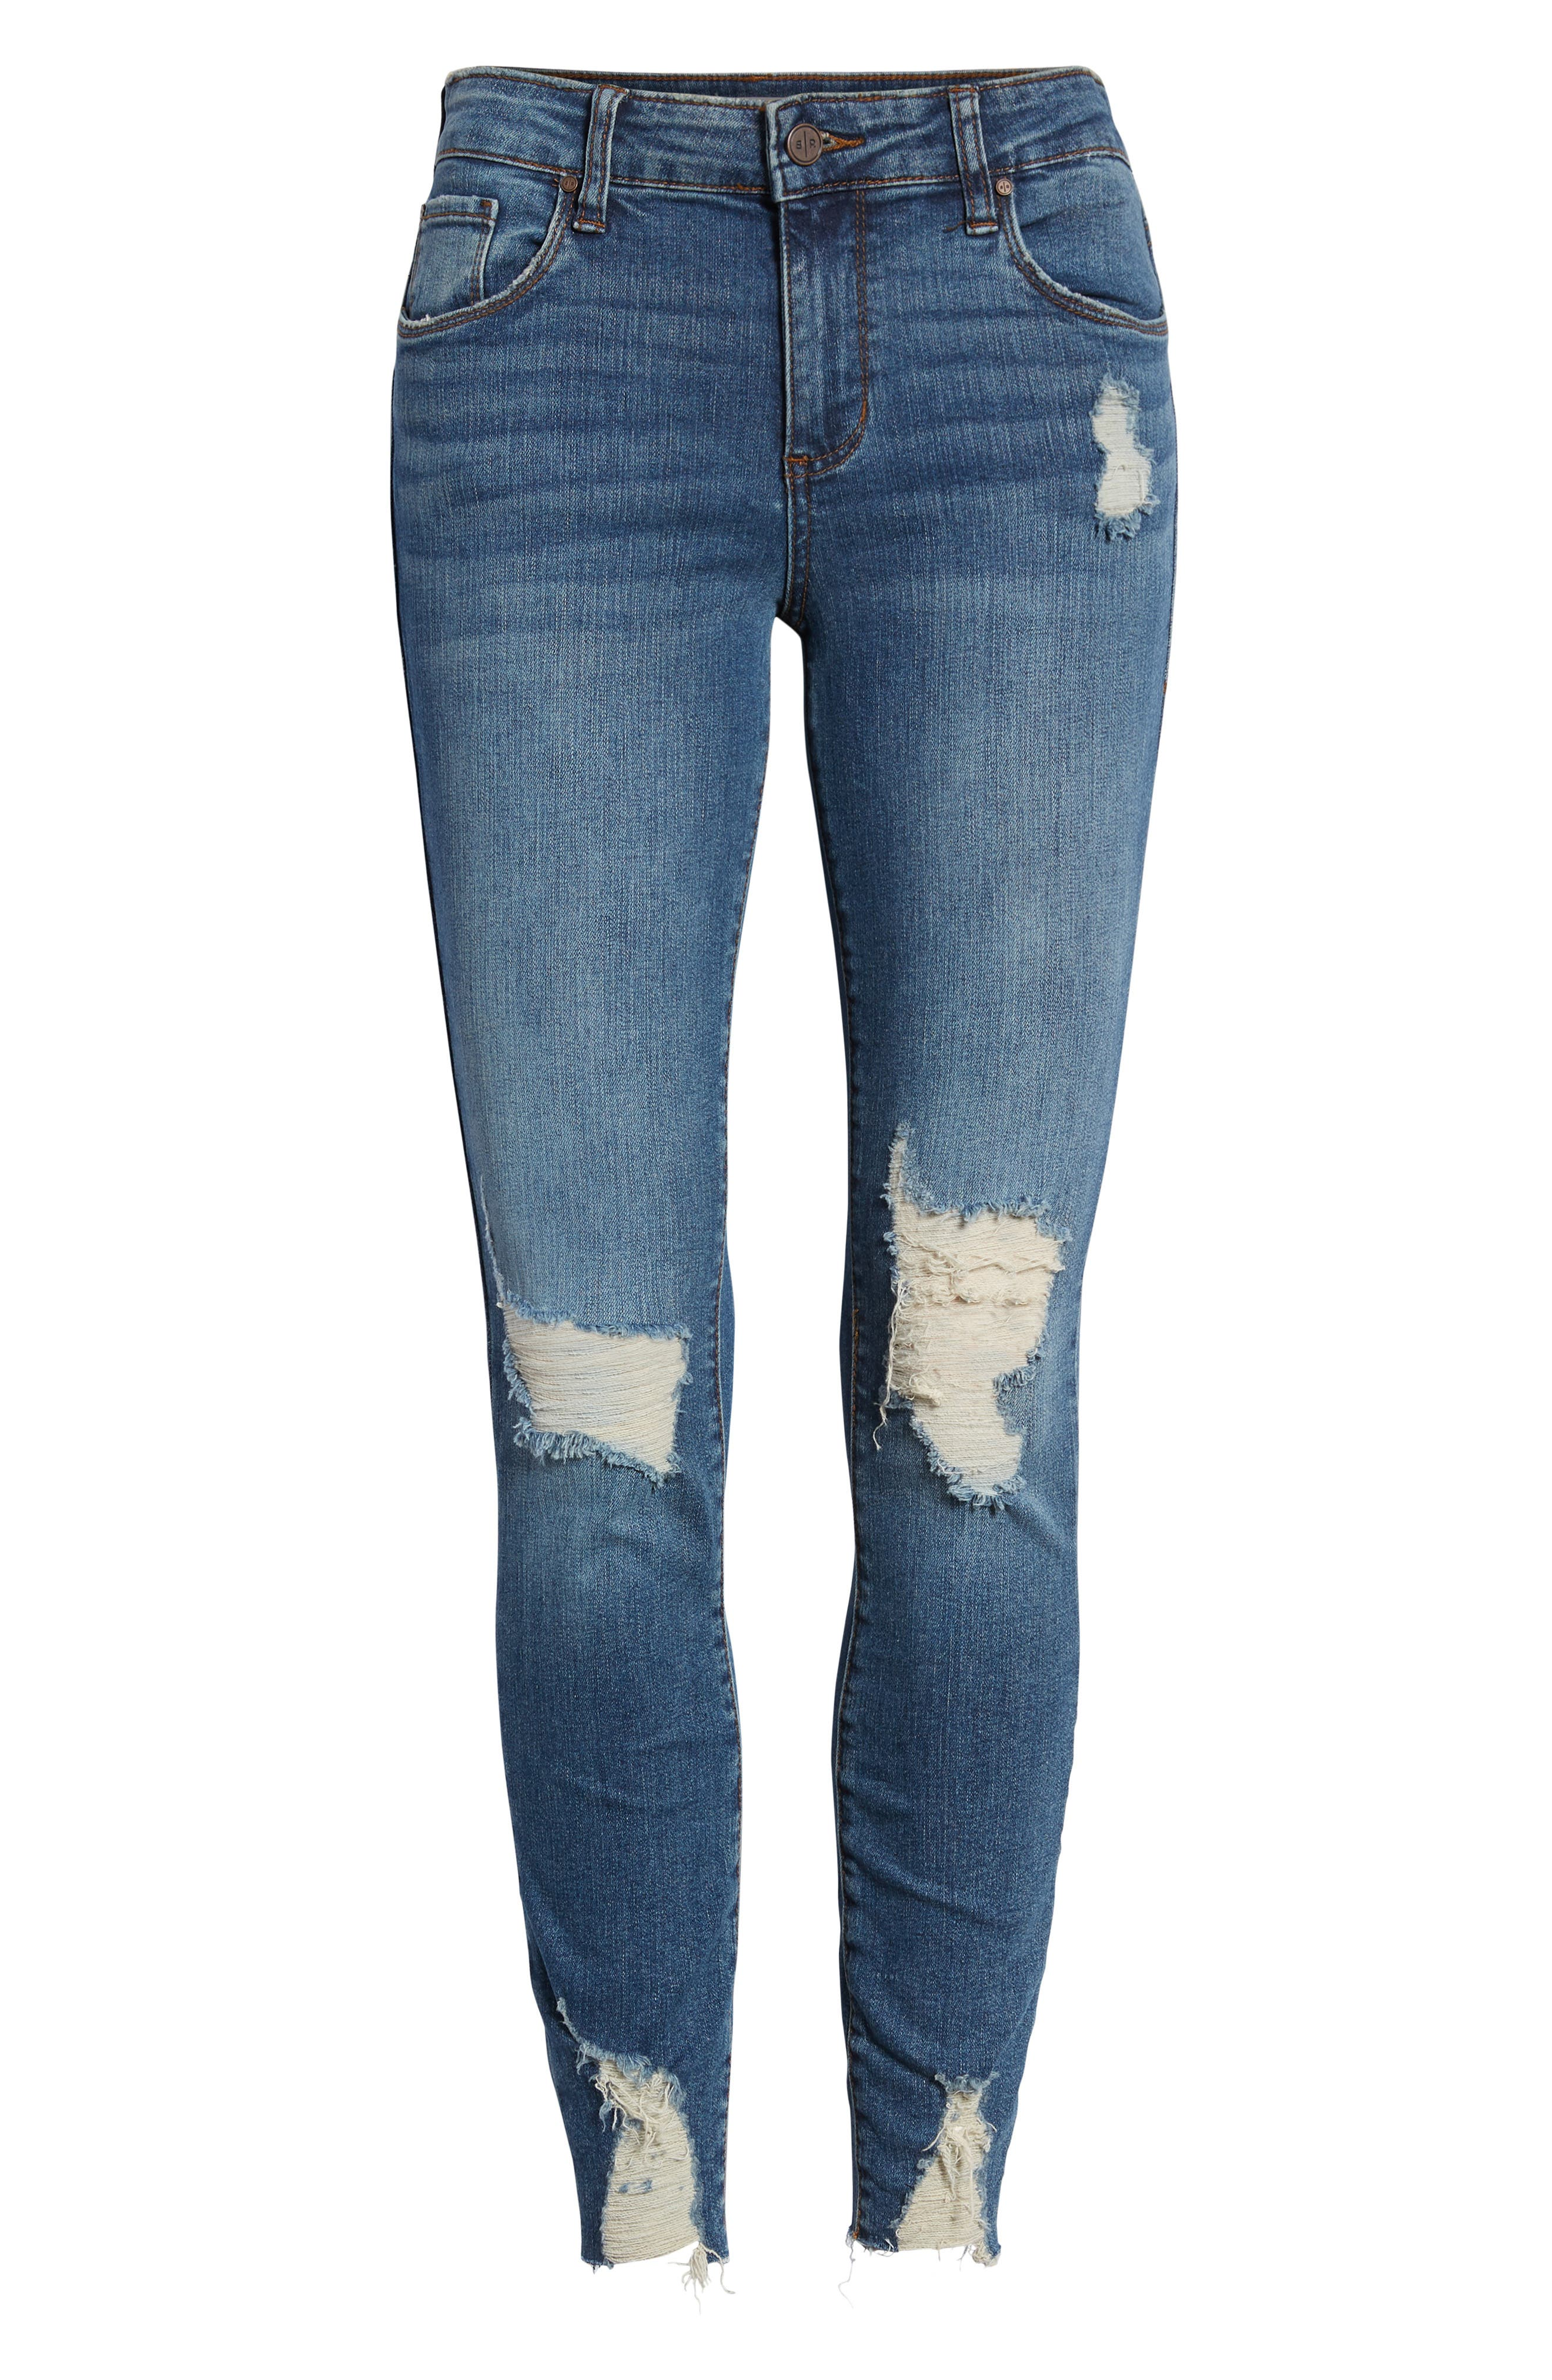 Ripped Skinny Jeans,                             Alternate thumbnail 7, color,                             DARK VINTAGE WASH